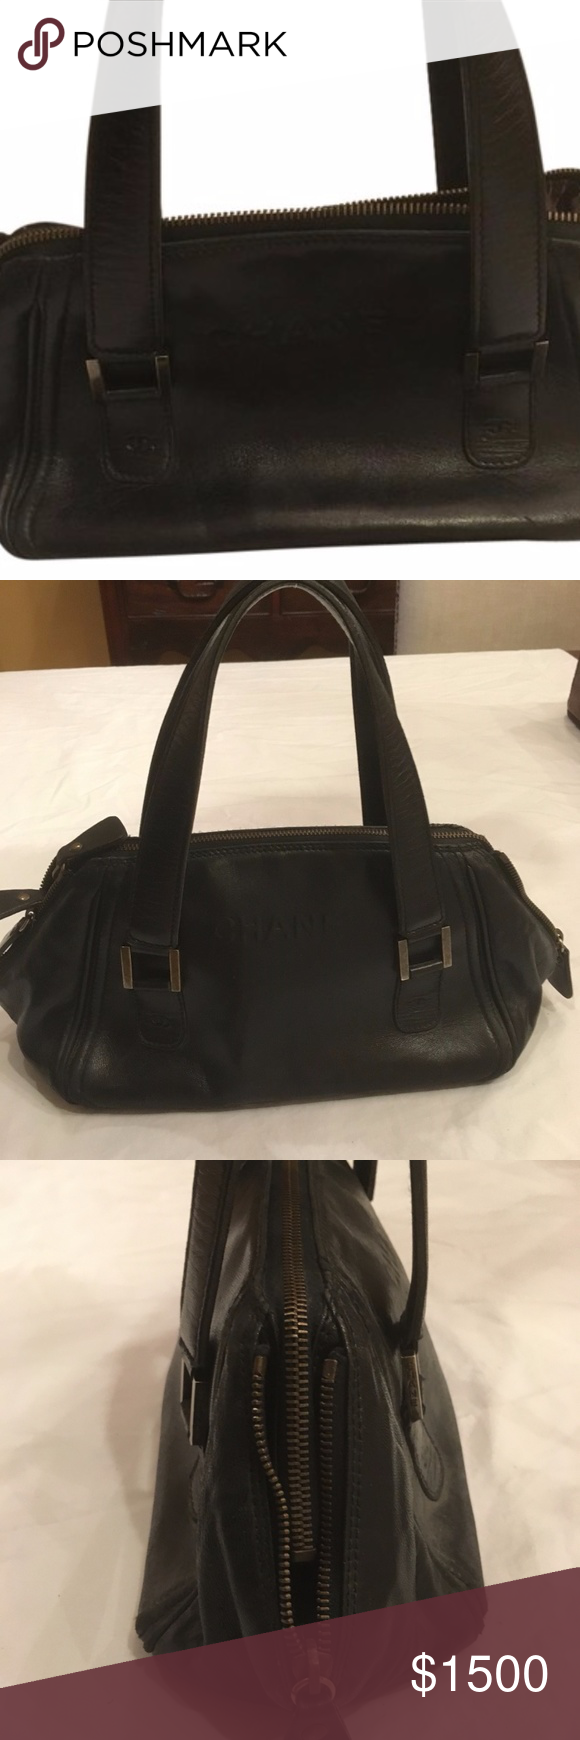 00aa0f94b0436d Spotted while shopping on Poshmark: Authentic VINTAGE Chanel Doctors Shoulder  Bag! #poshmark #fashion #shopping #style #CHANEL #Handbags